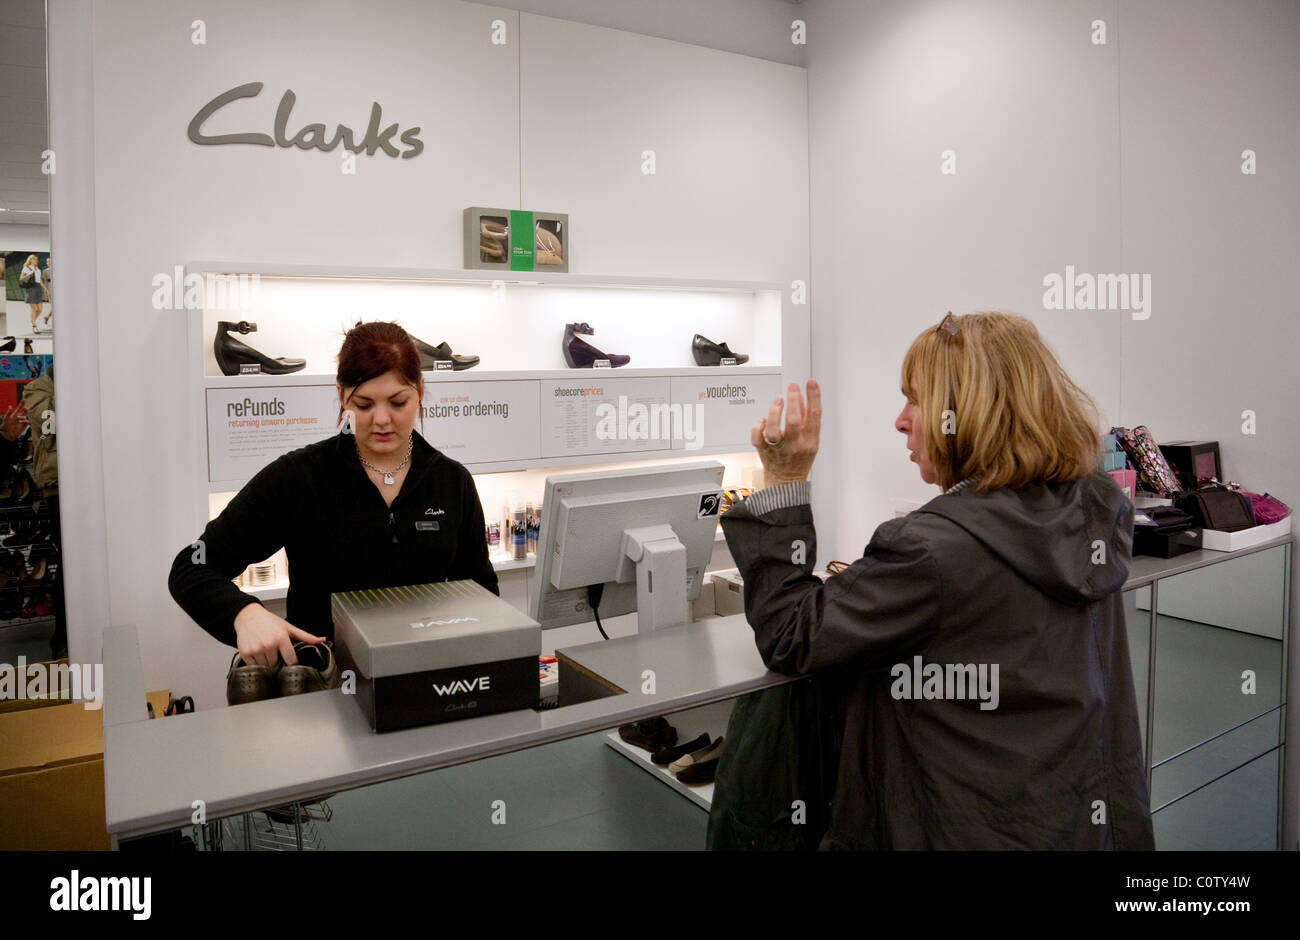 Clarks Shoes Shop Uk